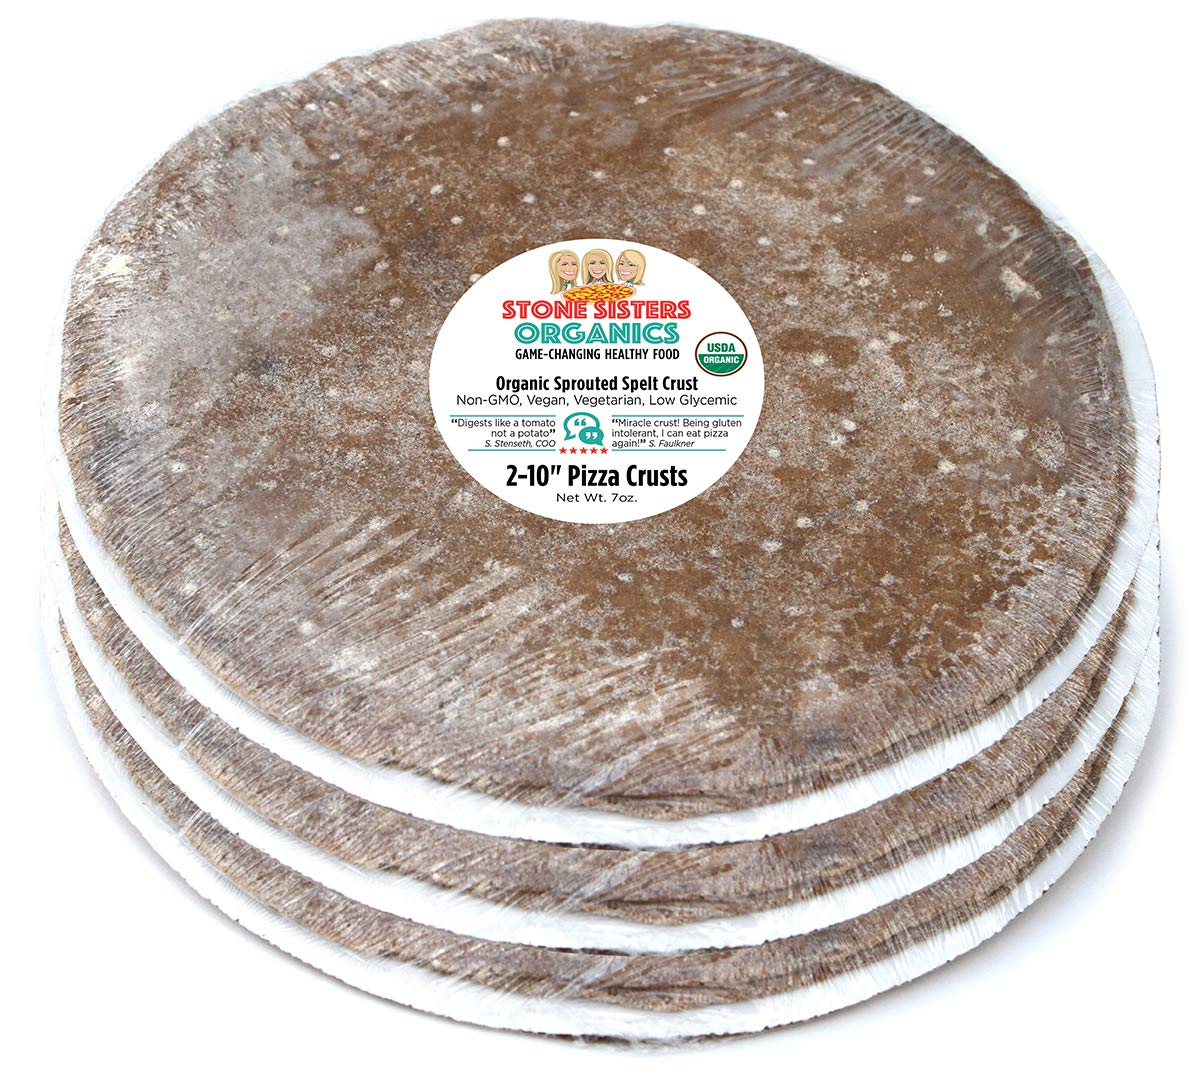 Organic Sprouted spelt pizza crusts completely healthy, vegetable carbohydrate, vitamin rich, unprocessed, Non GMO, thin, crispy, great taste, vegan, low glycemic, easy, 3 packs of 2 (10'') crusts by Stone Sisters Organics (Image #1)